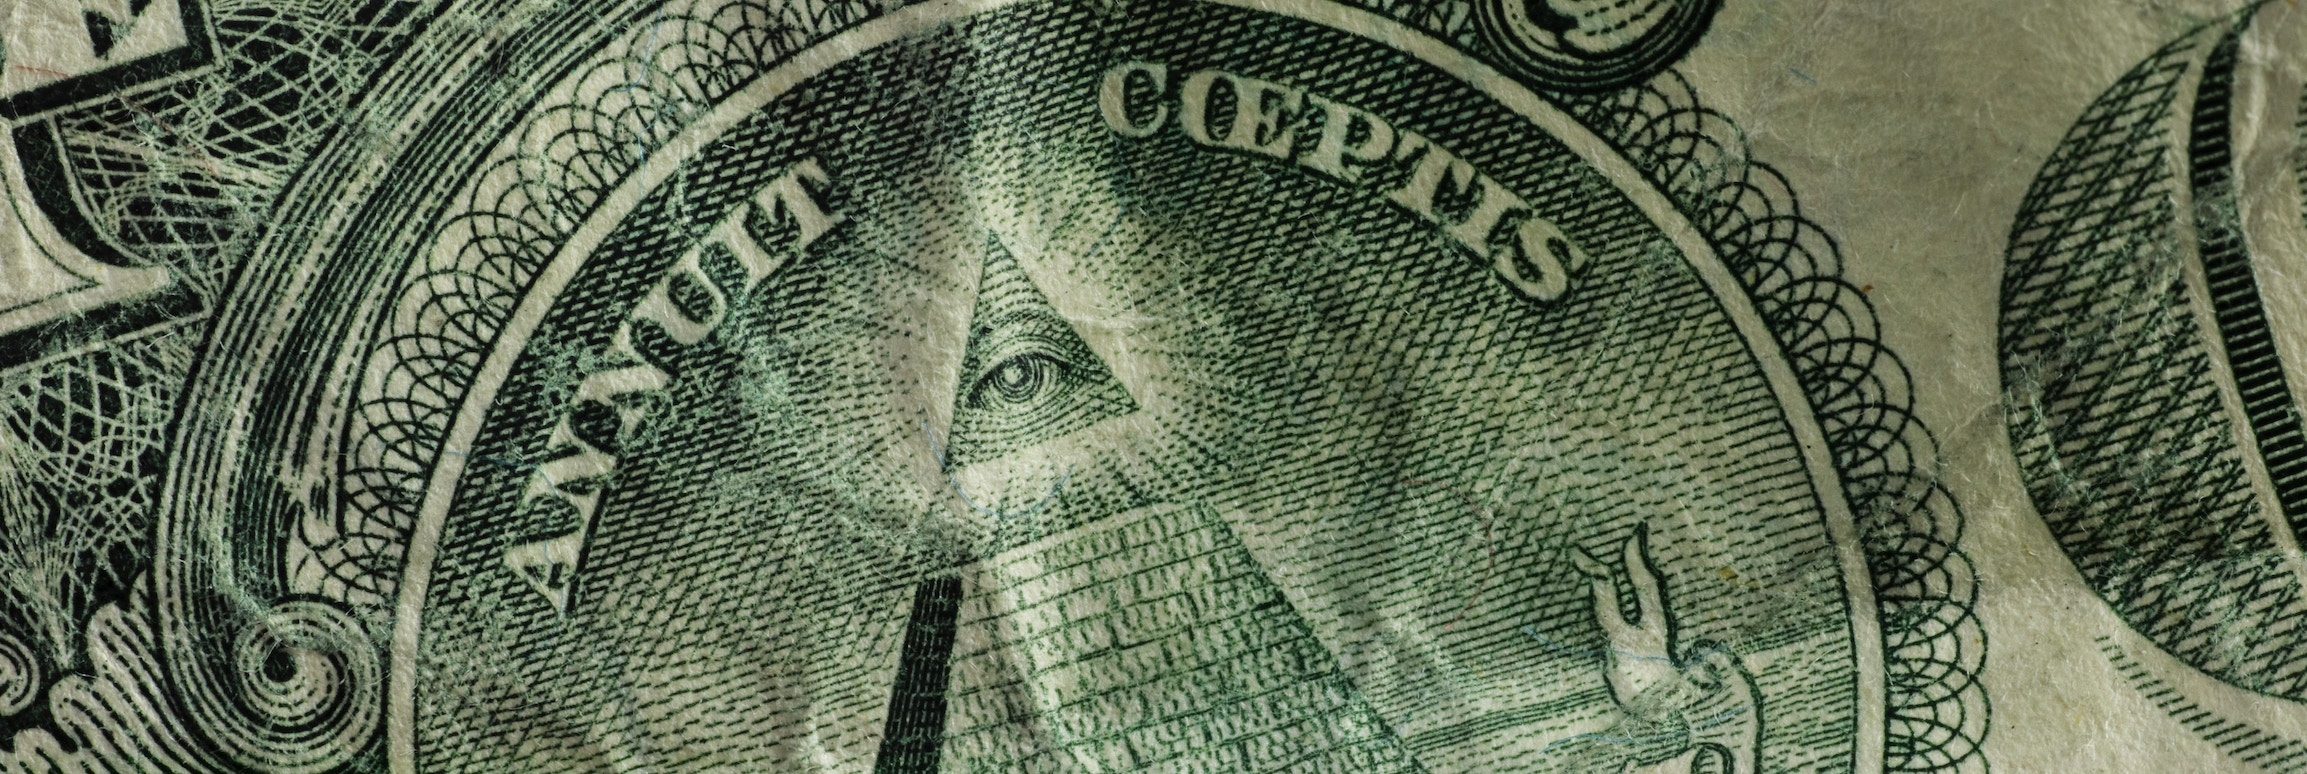 Dollar bill, all seeing eye zoomed in.